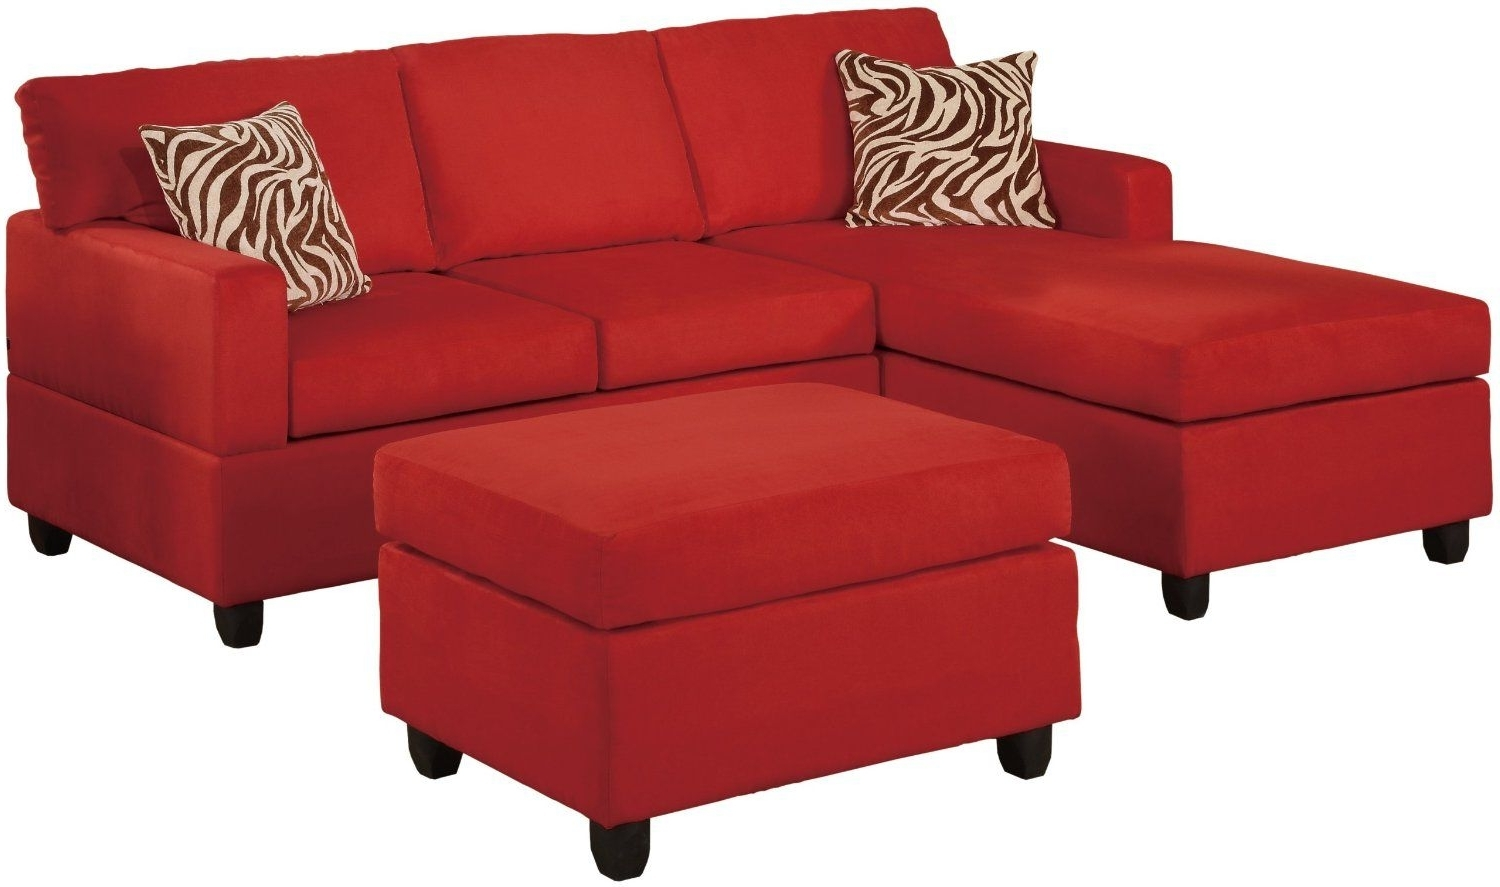 Amazon – Bobkona Manhattan Reversible Microfiber 3 Piece Pertaining To Well Liked Red Sectional Sofas With Ottoman (View 5 of 15)